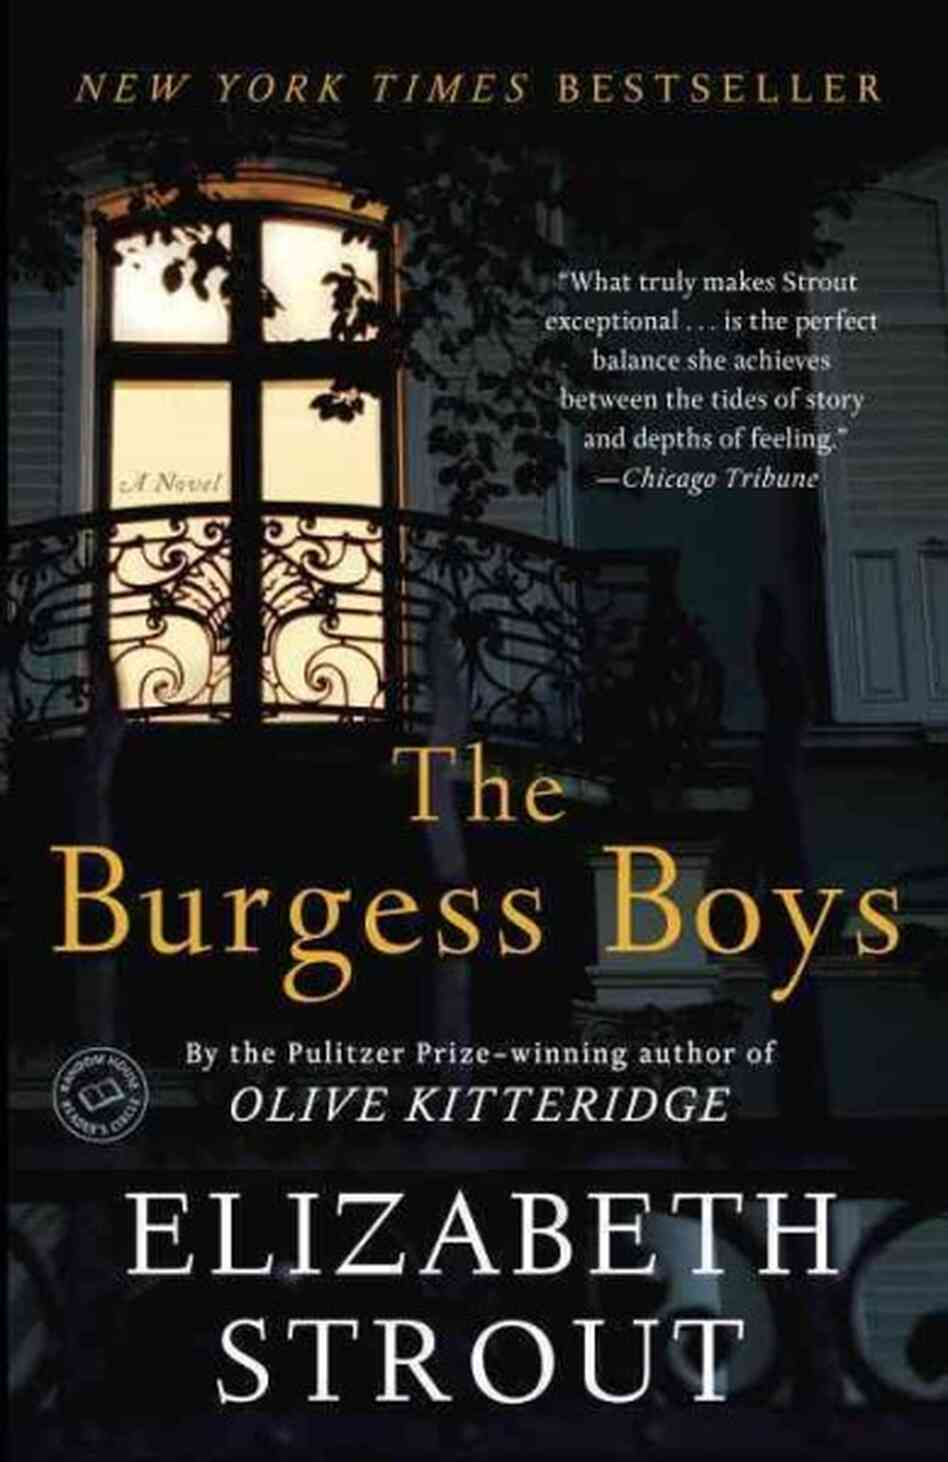 The Burgess Boys